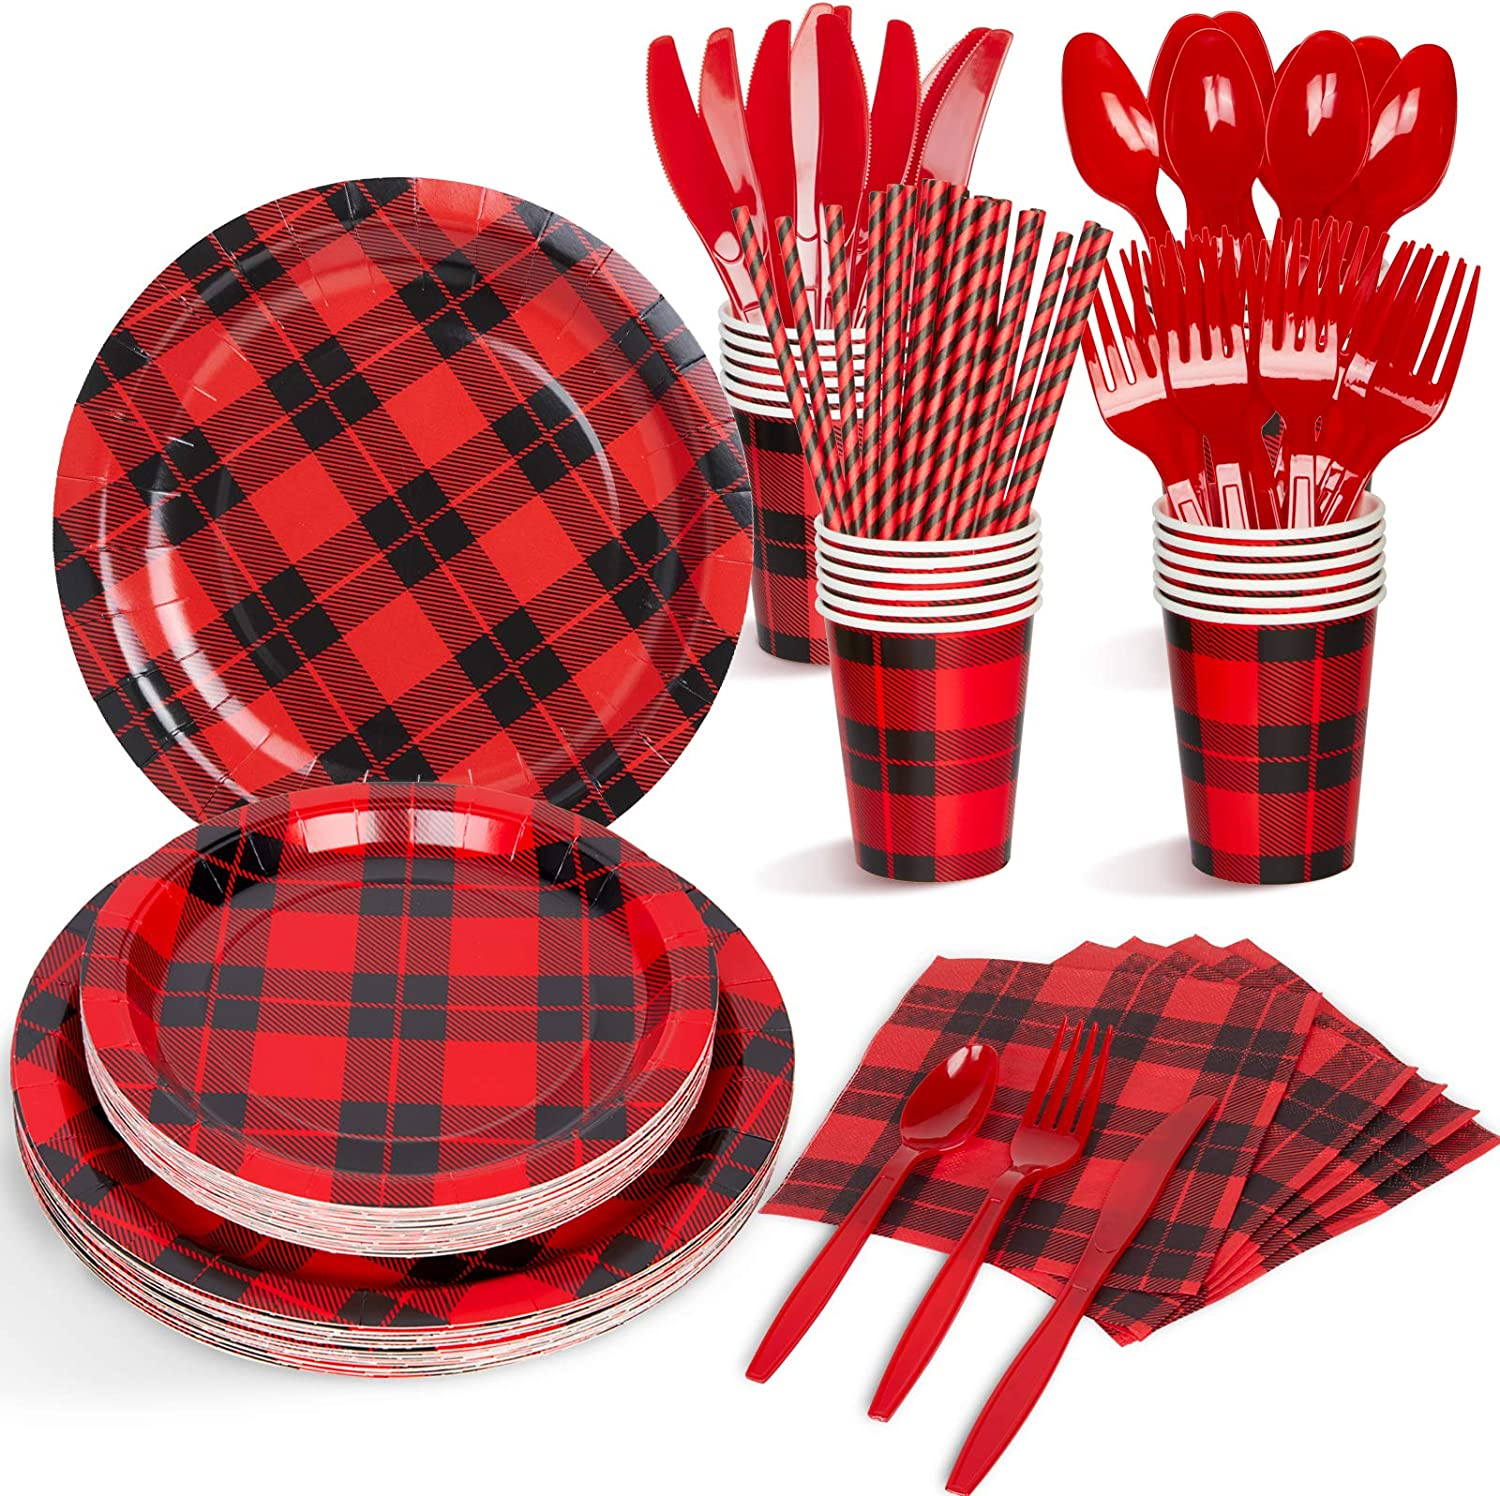 Decorlife 225PCS Buffalo Plaid Party Supplies, Lumberjack Party Plates and Napkins Set, 25 Guests, 50PCS Napkins, Birthday Party Plates, Cups, Straws, Knives, Forks and Spoons